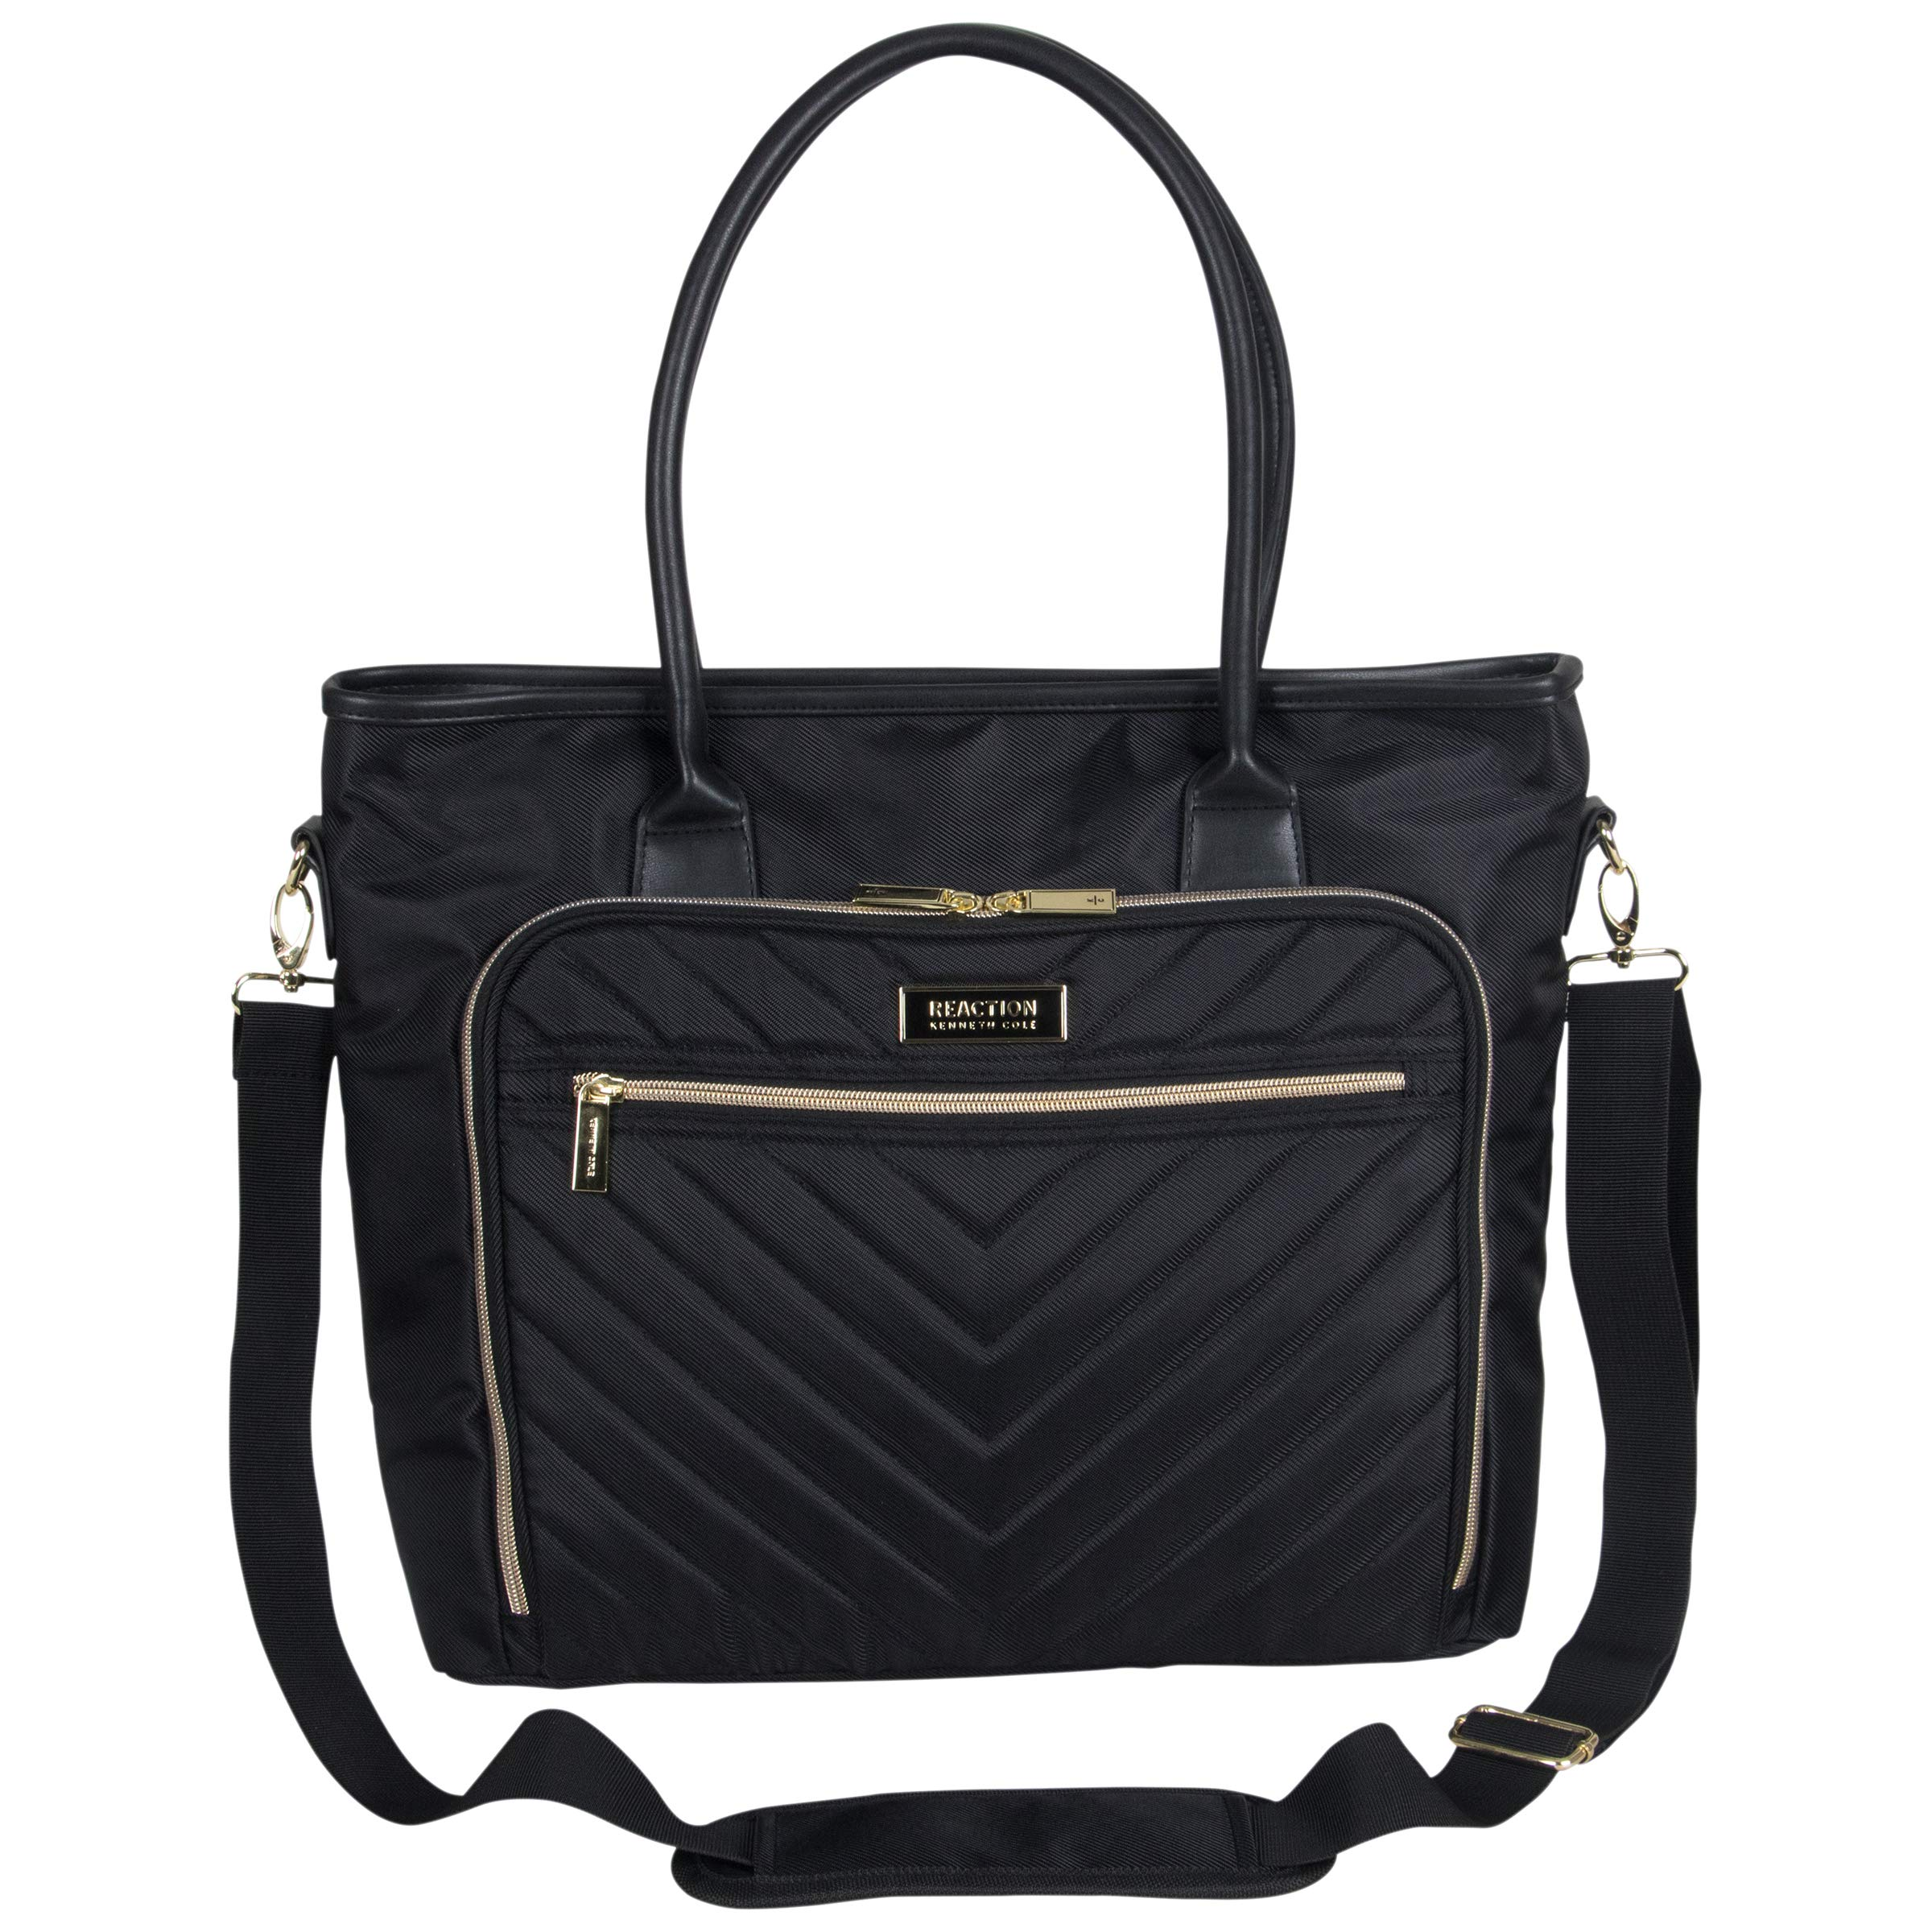 Kenneth Cole Reaction Twill with Quilted Chevron 15'' Laptop Tote Black One Size by Kenneth Cole REACTION